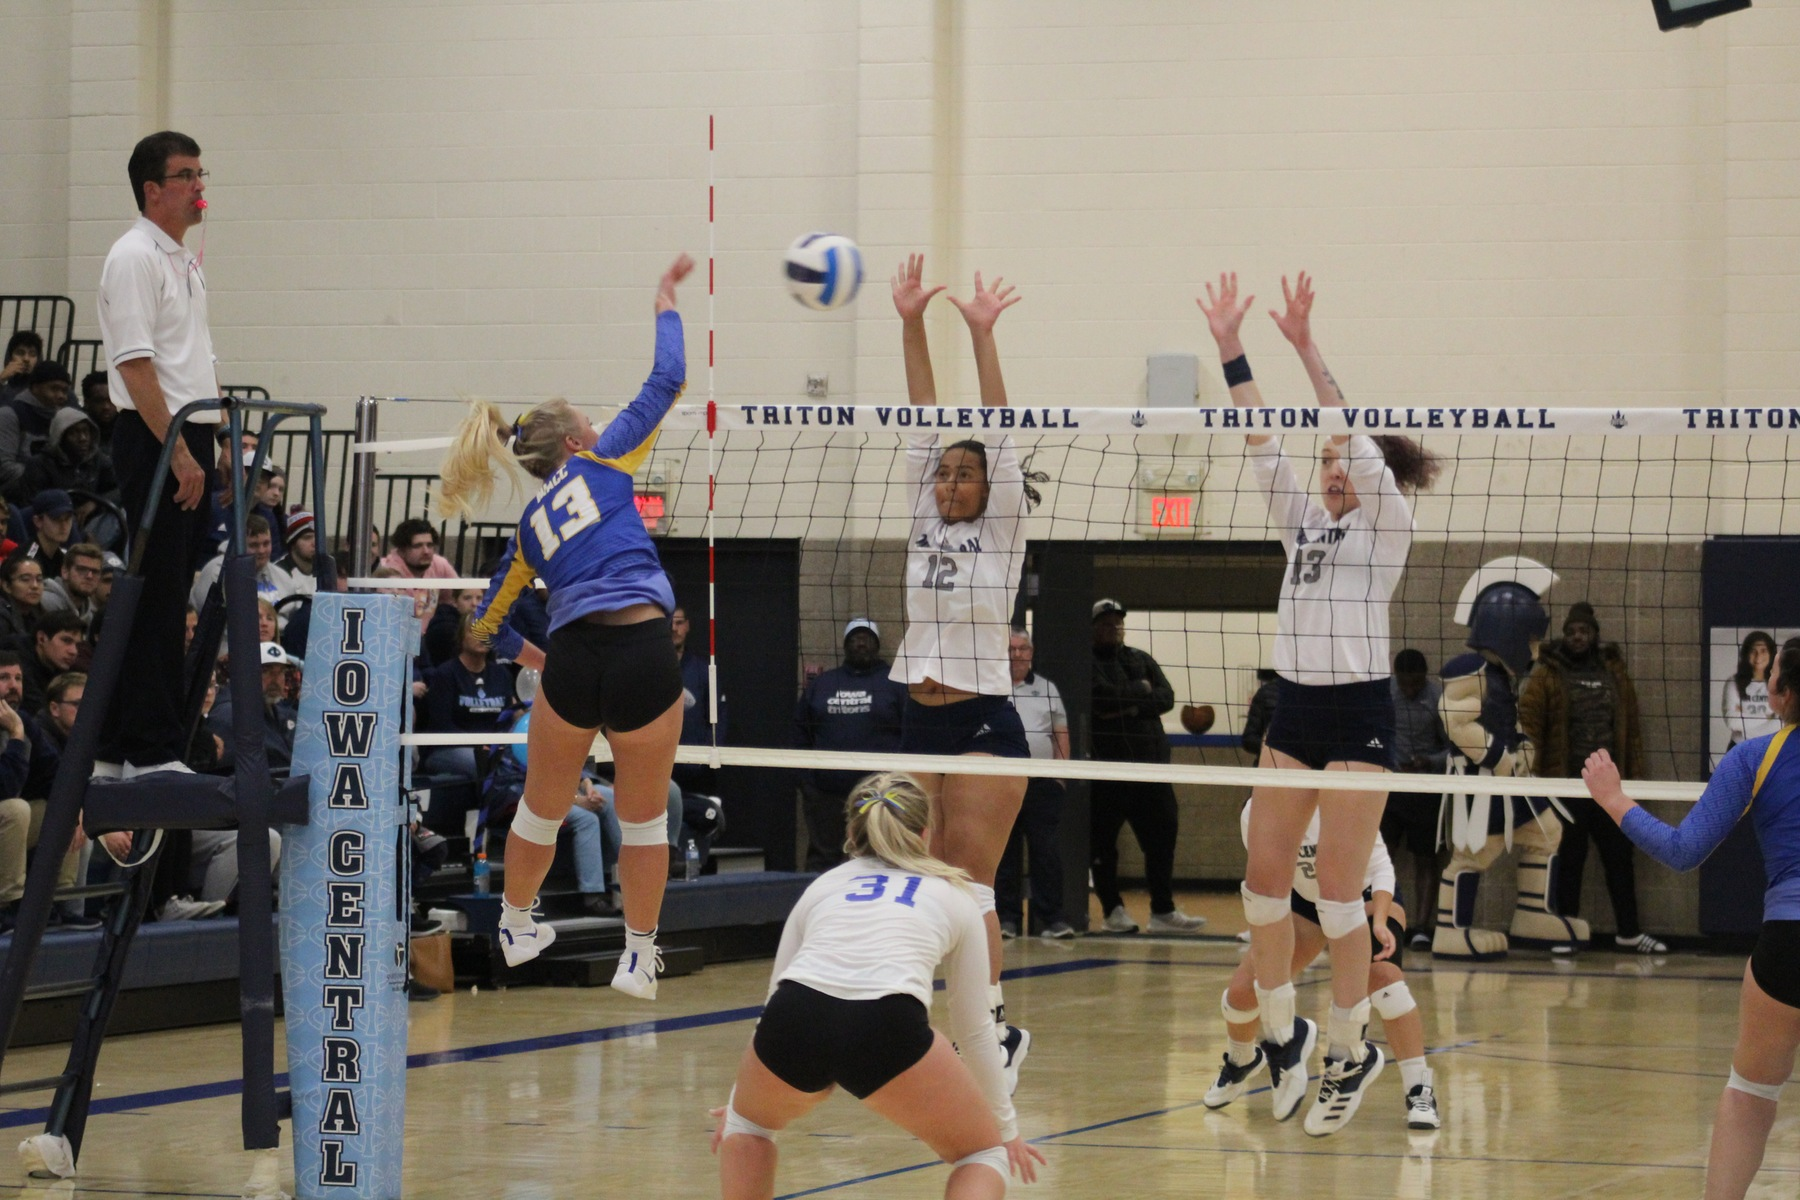 Alexa Loftus hits the ball over the net in Wednesday's match at Iowa Central.